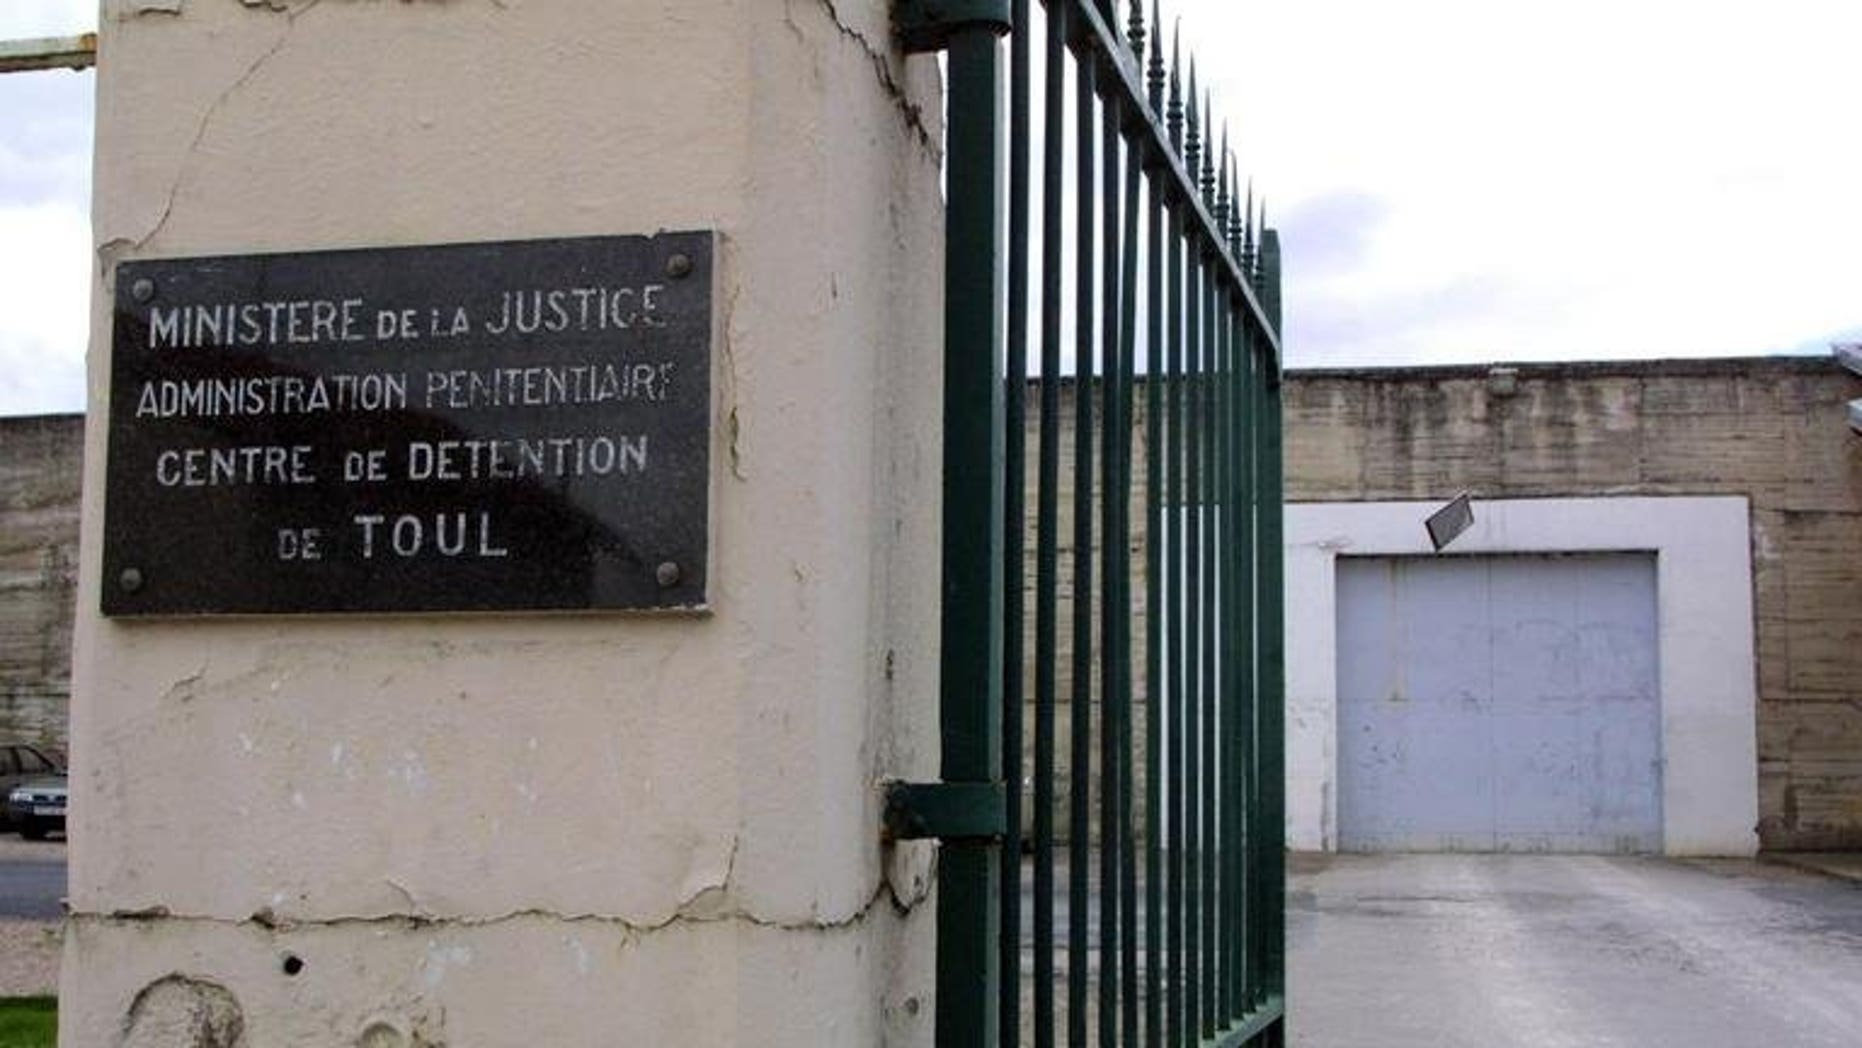 A view of Toul detention centre in eastern France on April 3, 2001. A French mother who allegedly held down her four-year-old son while he was raped by his step-father in the prison's visiting room went on trial in Strasbourg on Monday.